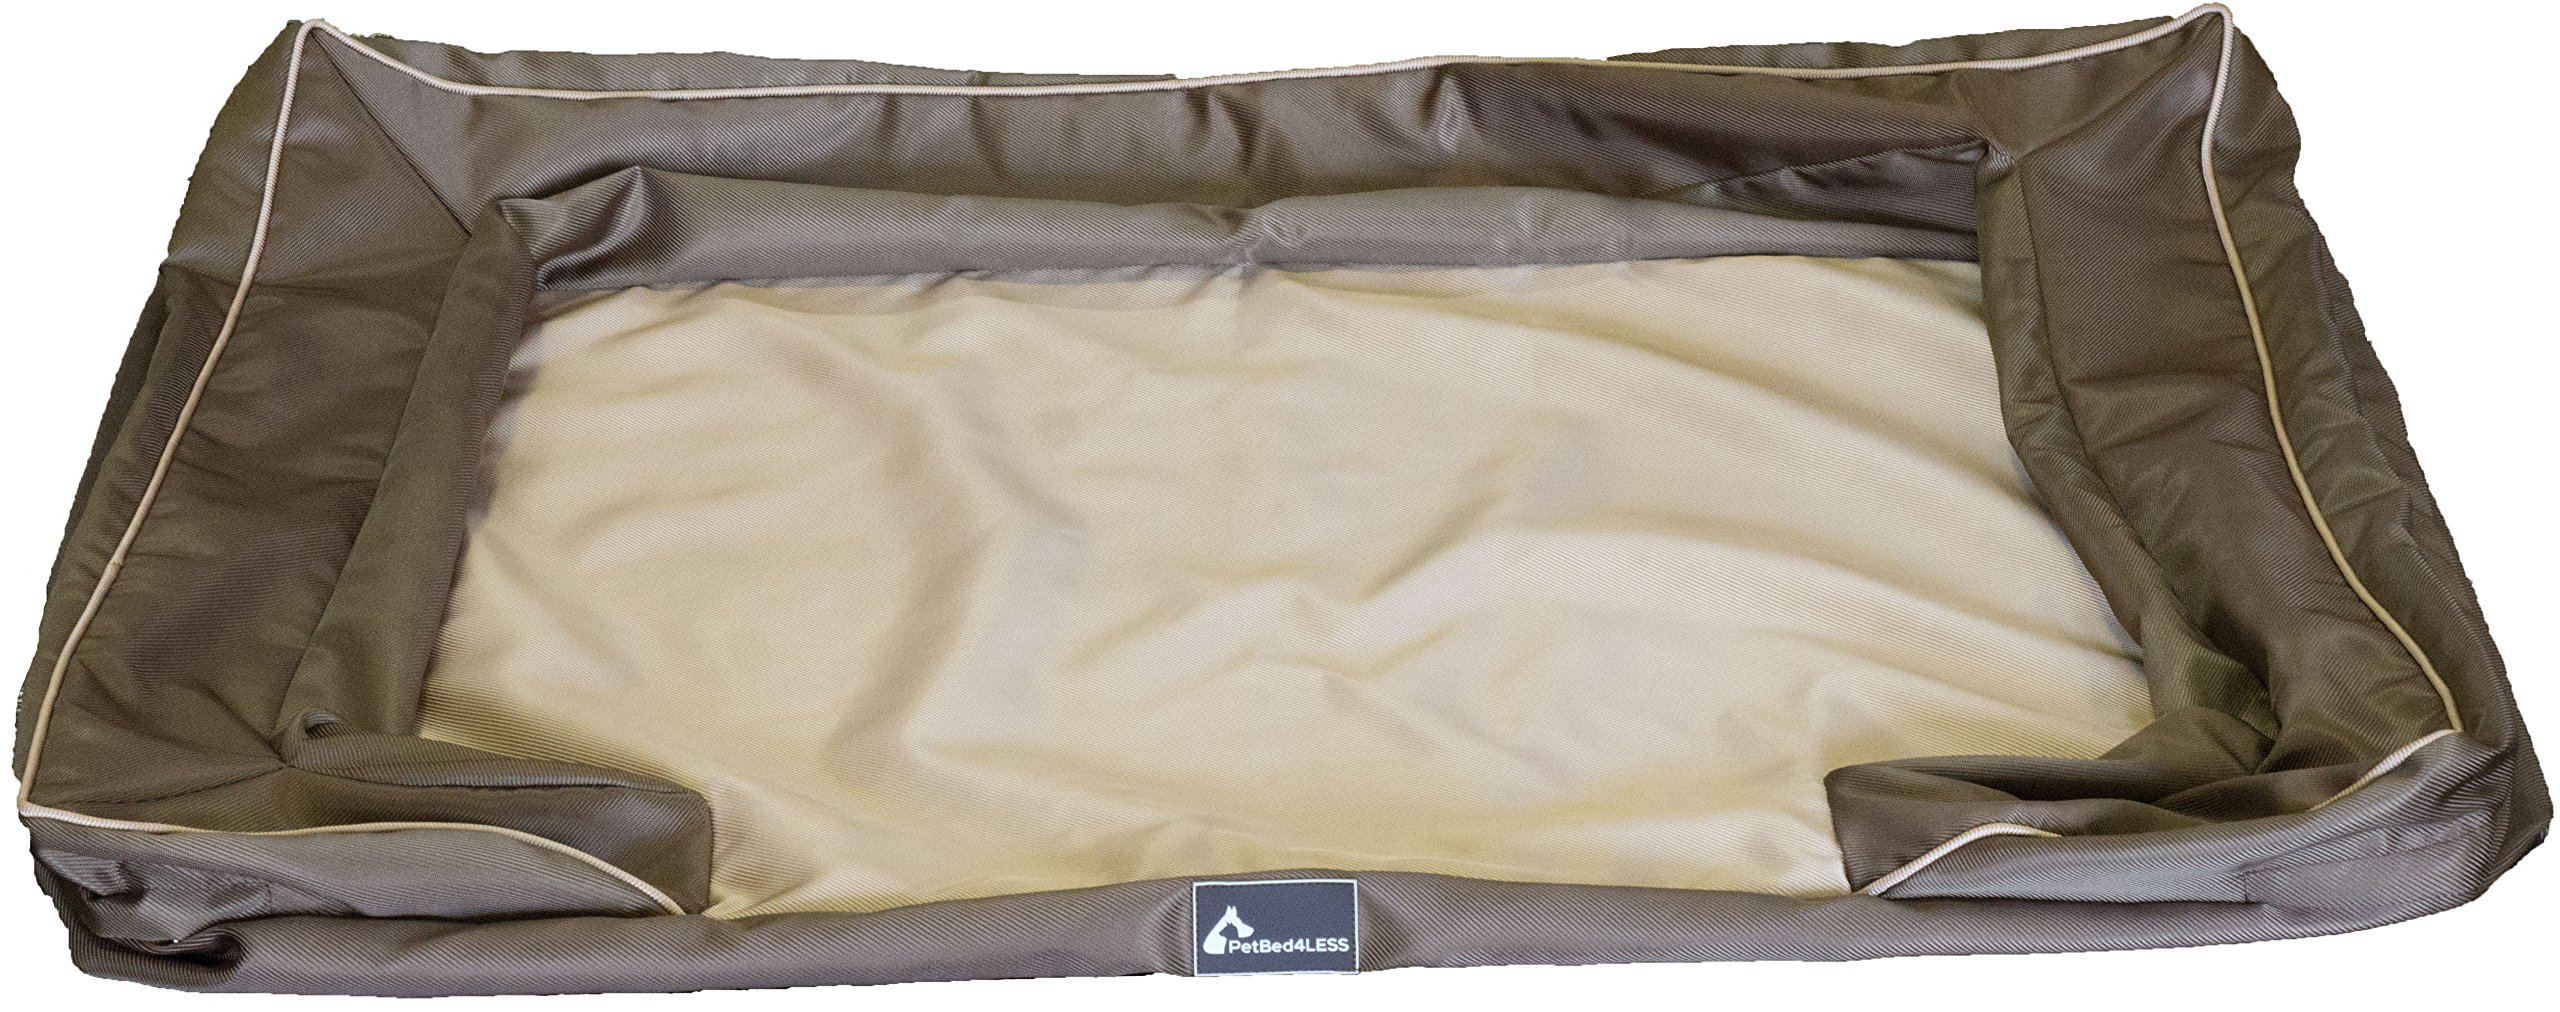 PetBed4Less Deluxe Dog Bed Sofa & Lounge Heavy Duty Removable Zipper Covers